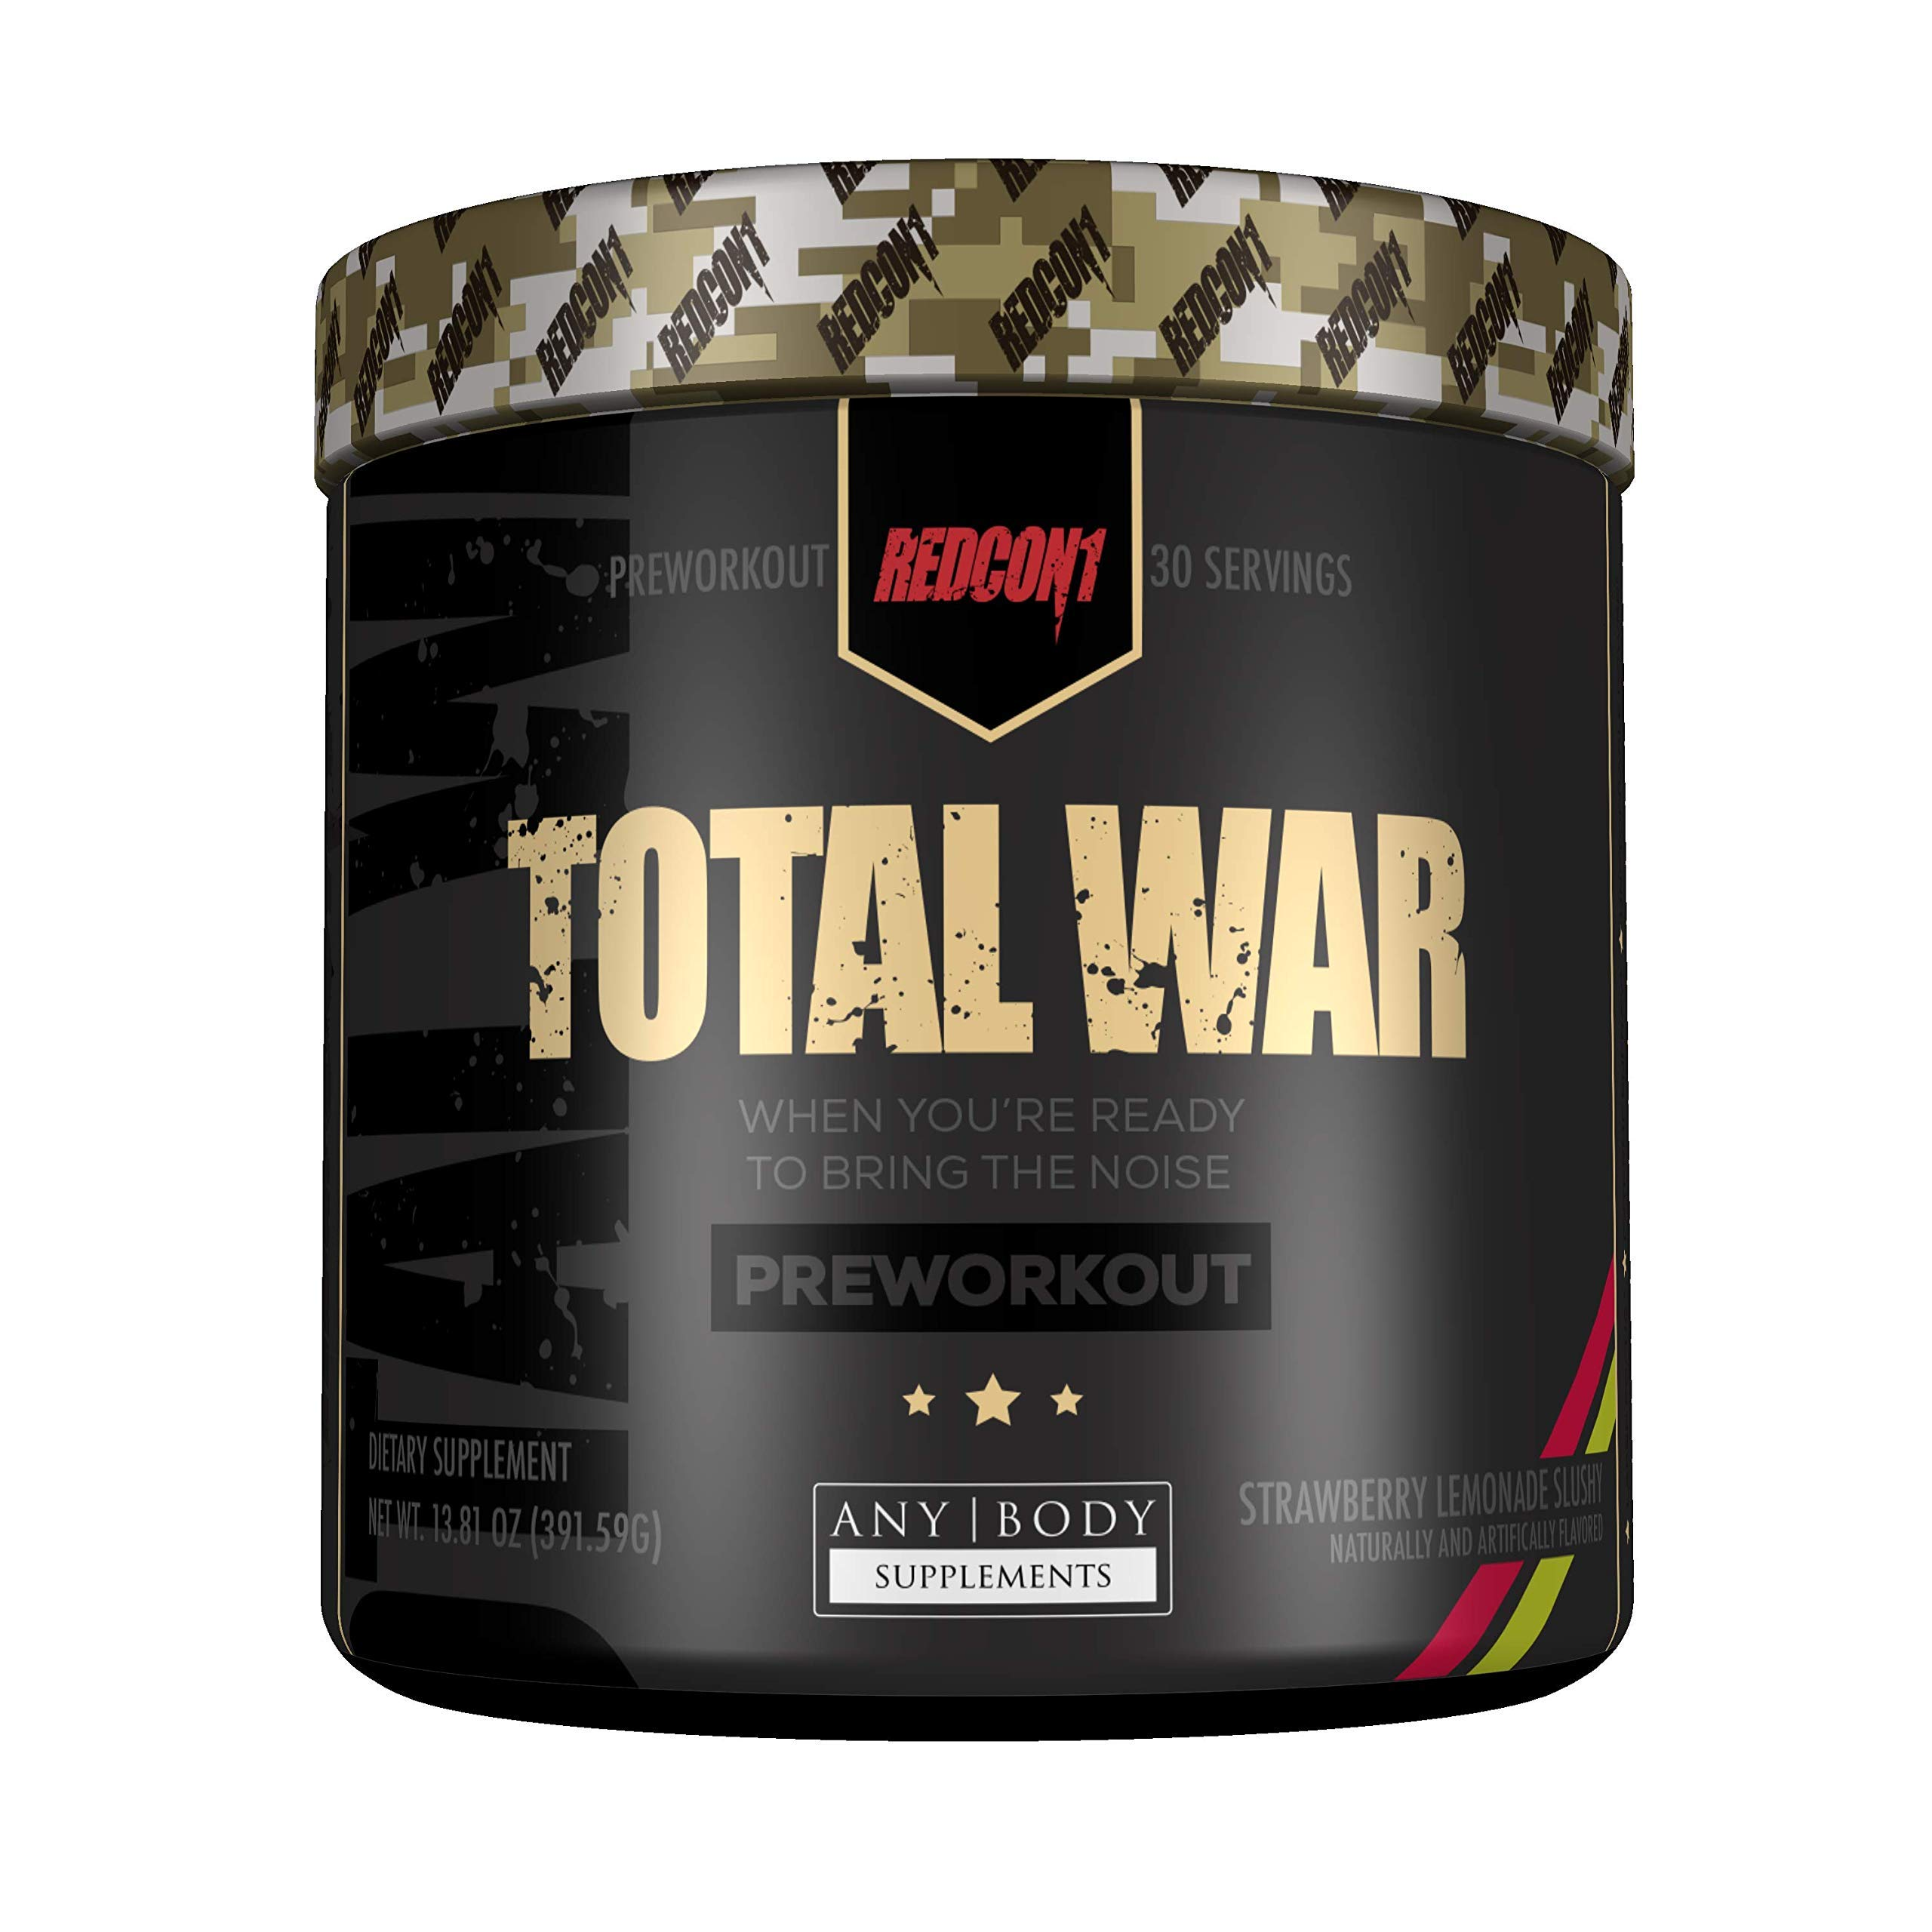 Total War - Pre Workout - 30 Servings - Newly Formulated (Strawberry Lemonade Slushy) | Limited Edition Any Body Supplements Exclusive